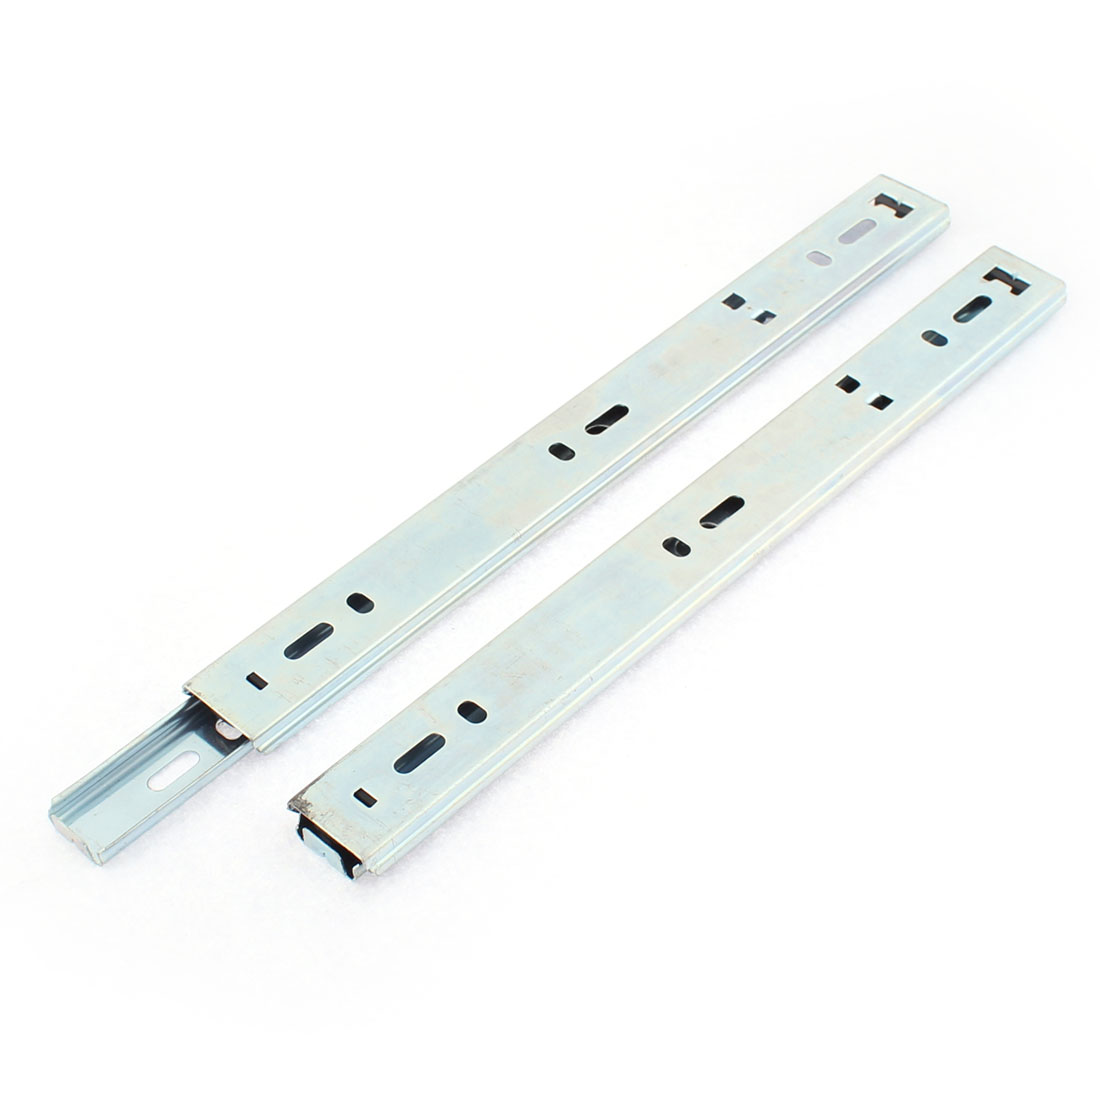 240mm Metal Ball Bearing Side Mounted Drawer Slides Rail Track 2pcs